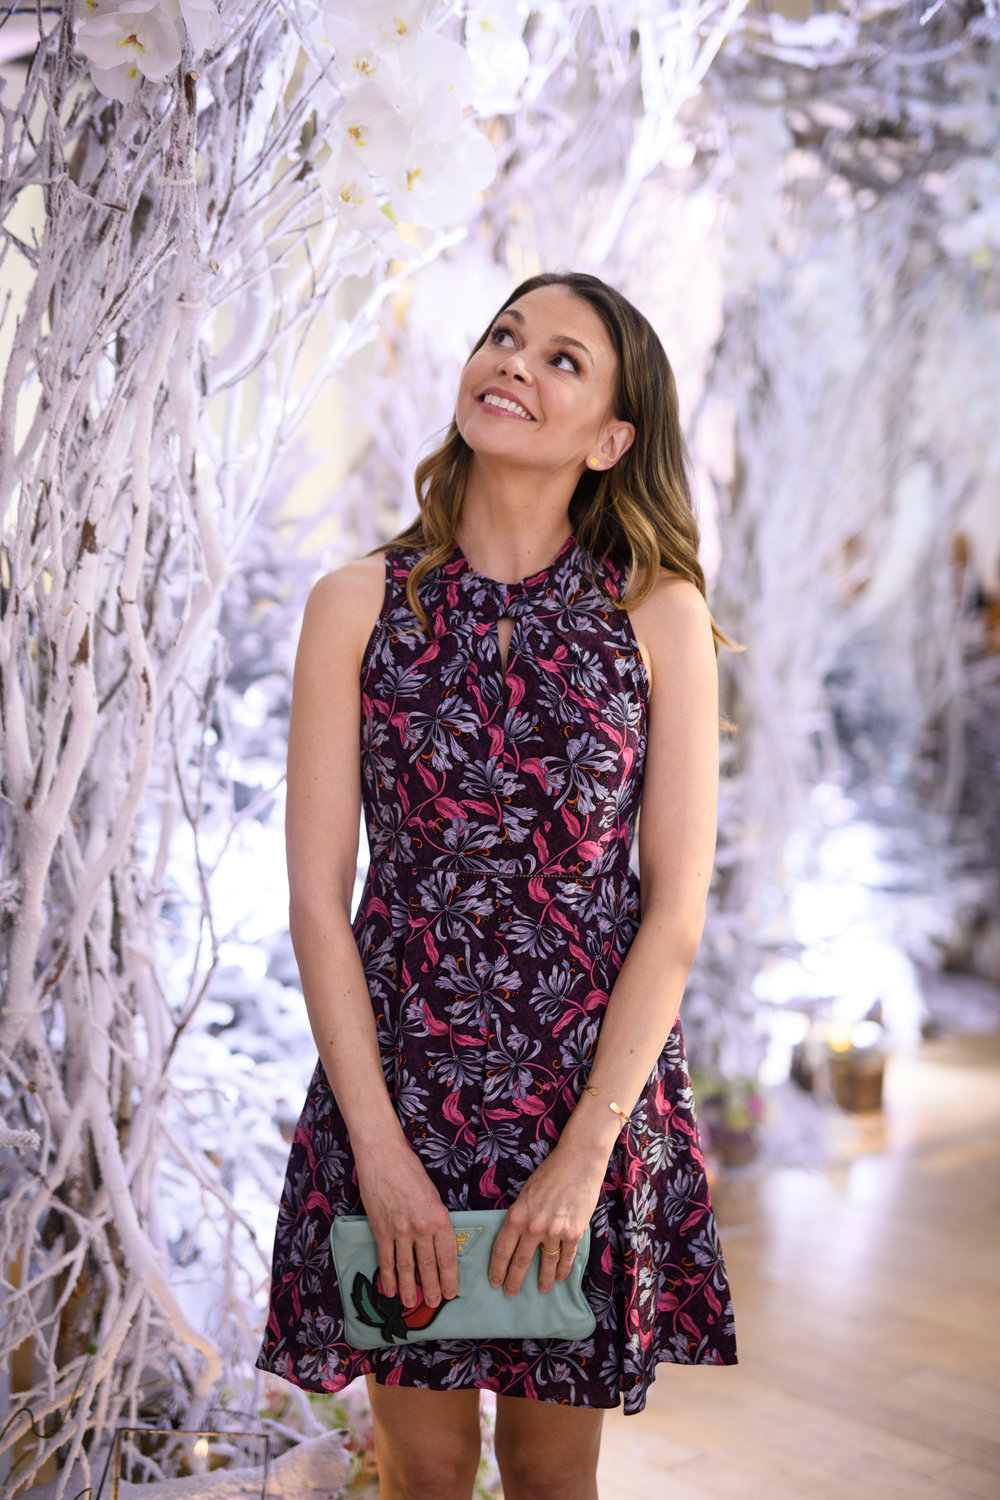 Sutton Foster // GETTY / David Kotinsky